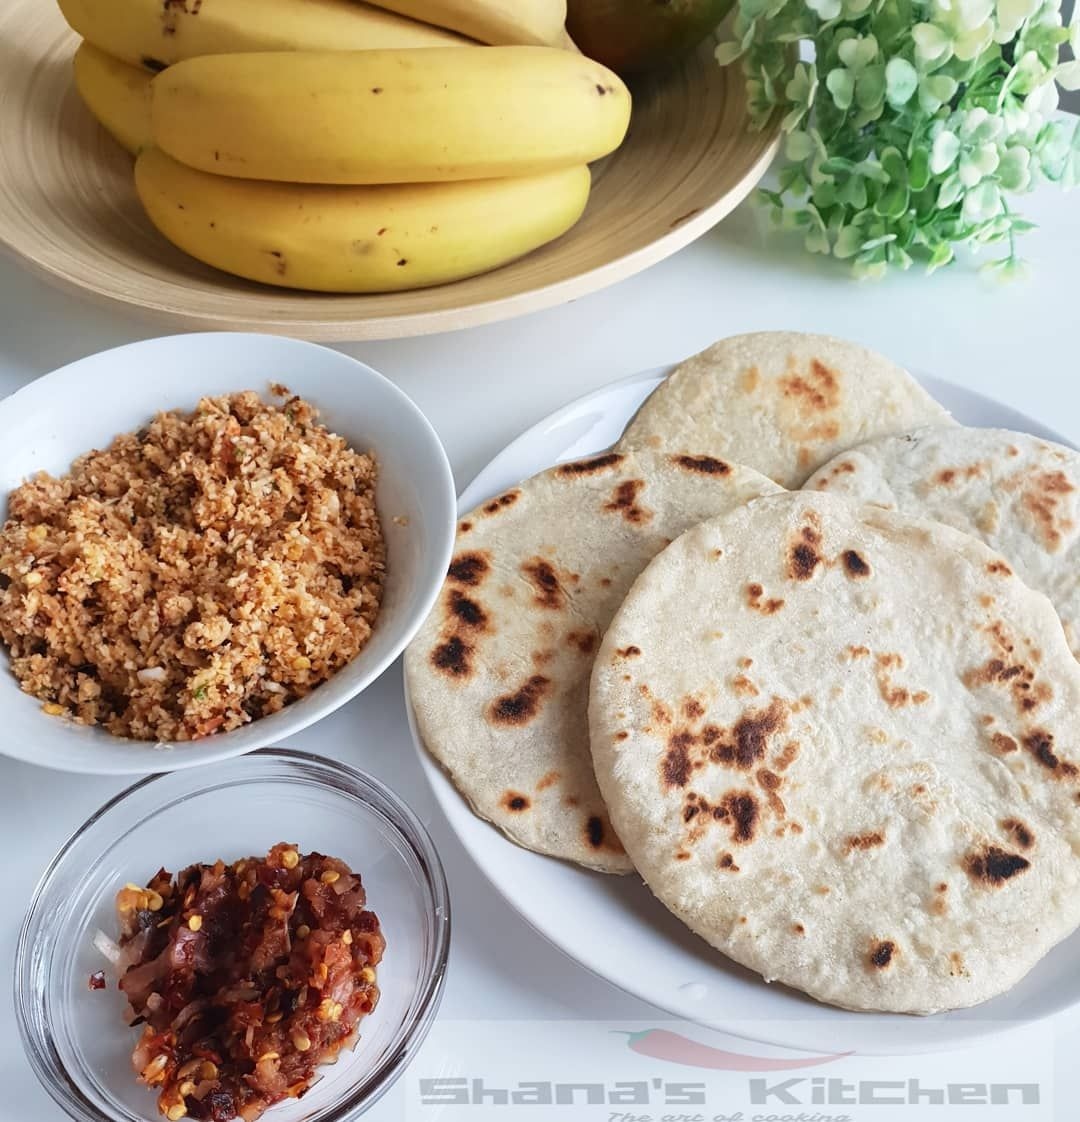 Sri Lankan Coconut Roti Or Pol Roti A Flat Bread Made Up Of Flour Freshly Grated Coconut With Finely Chopped Green Chillies And Onions For Extra Texture This